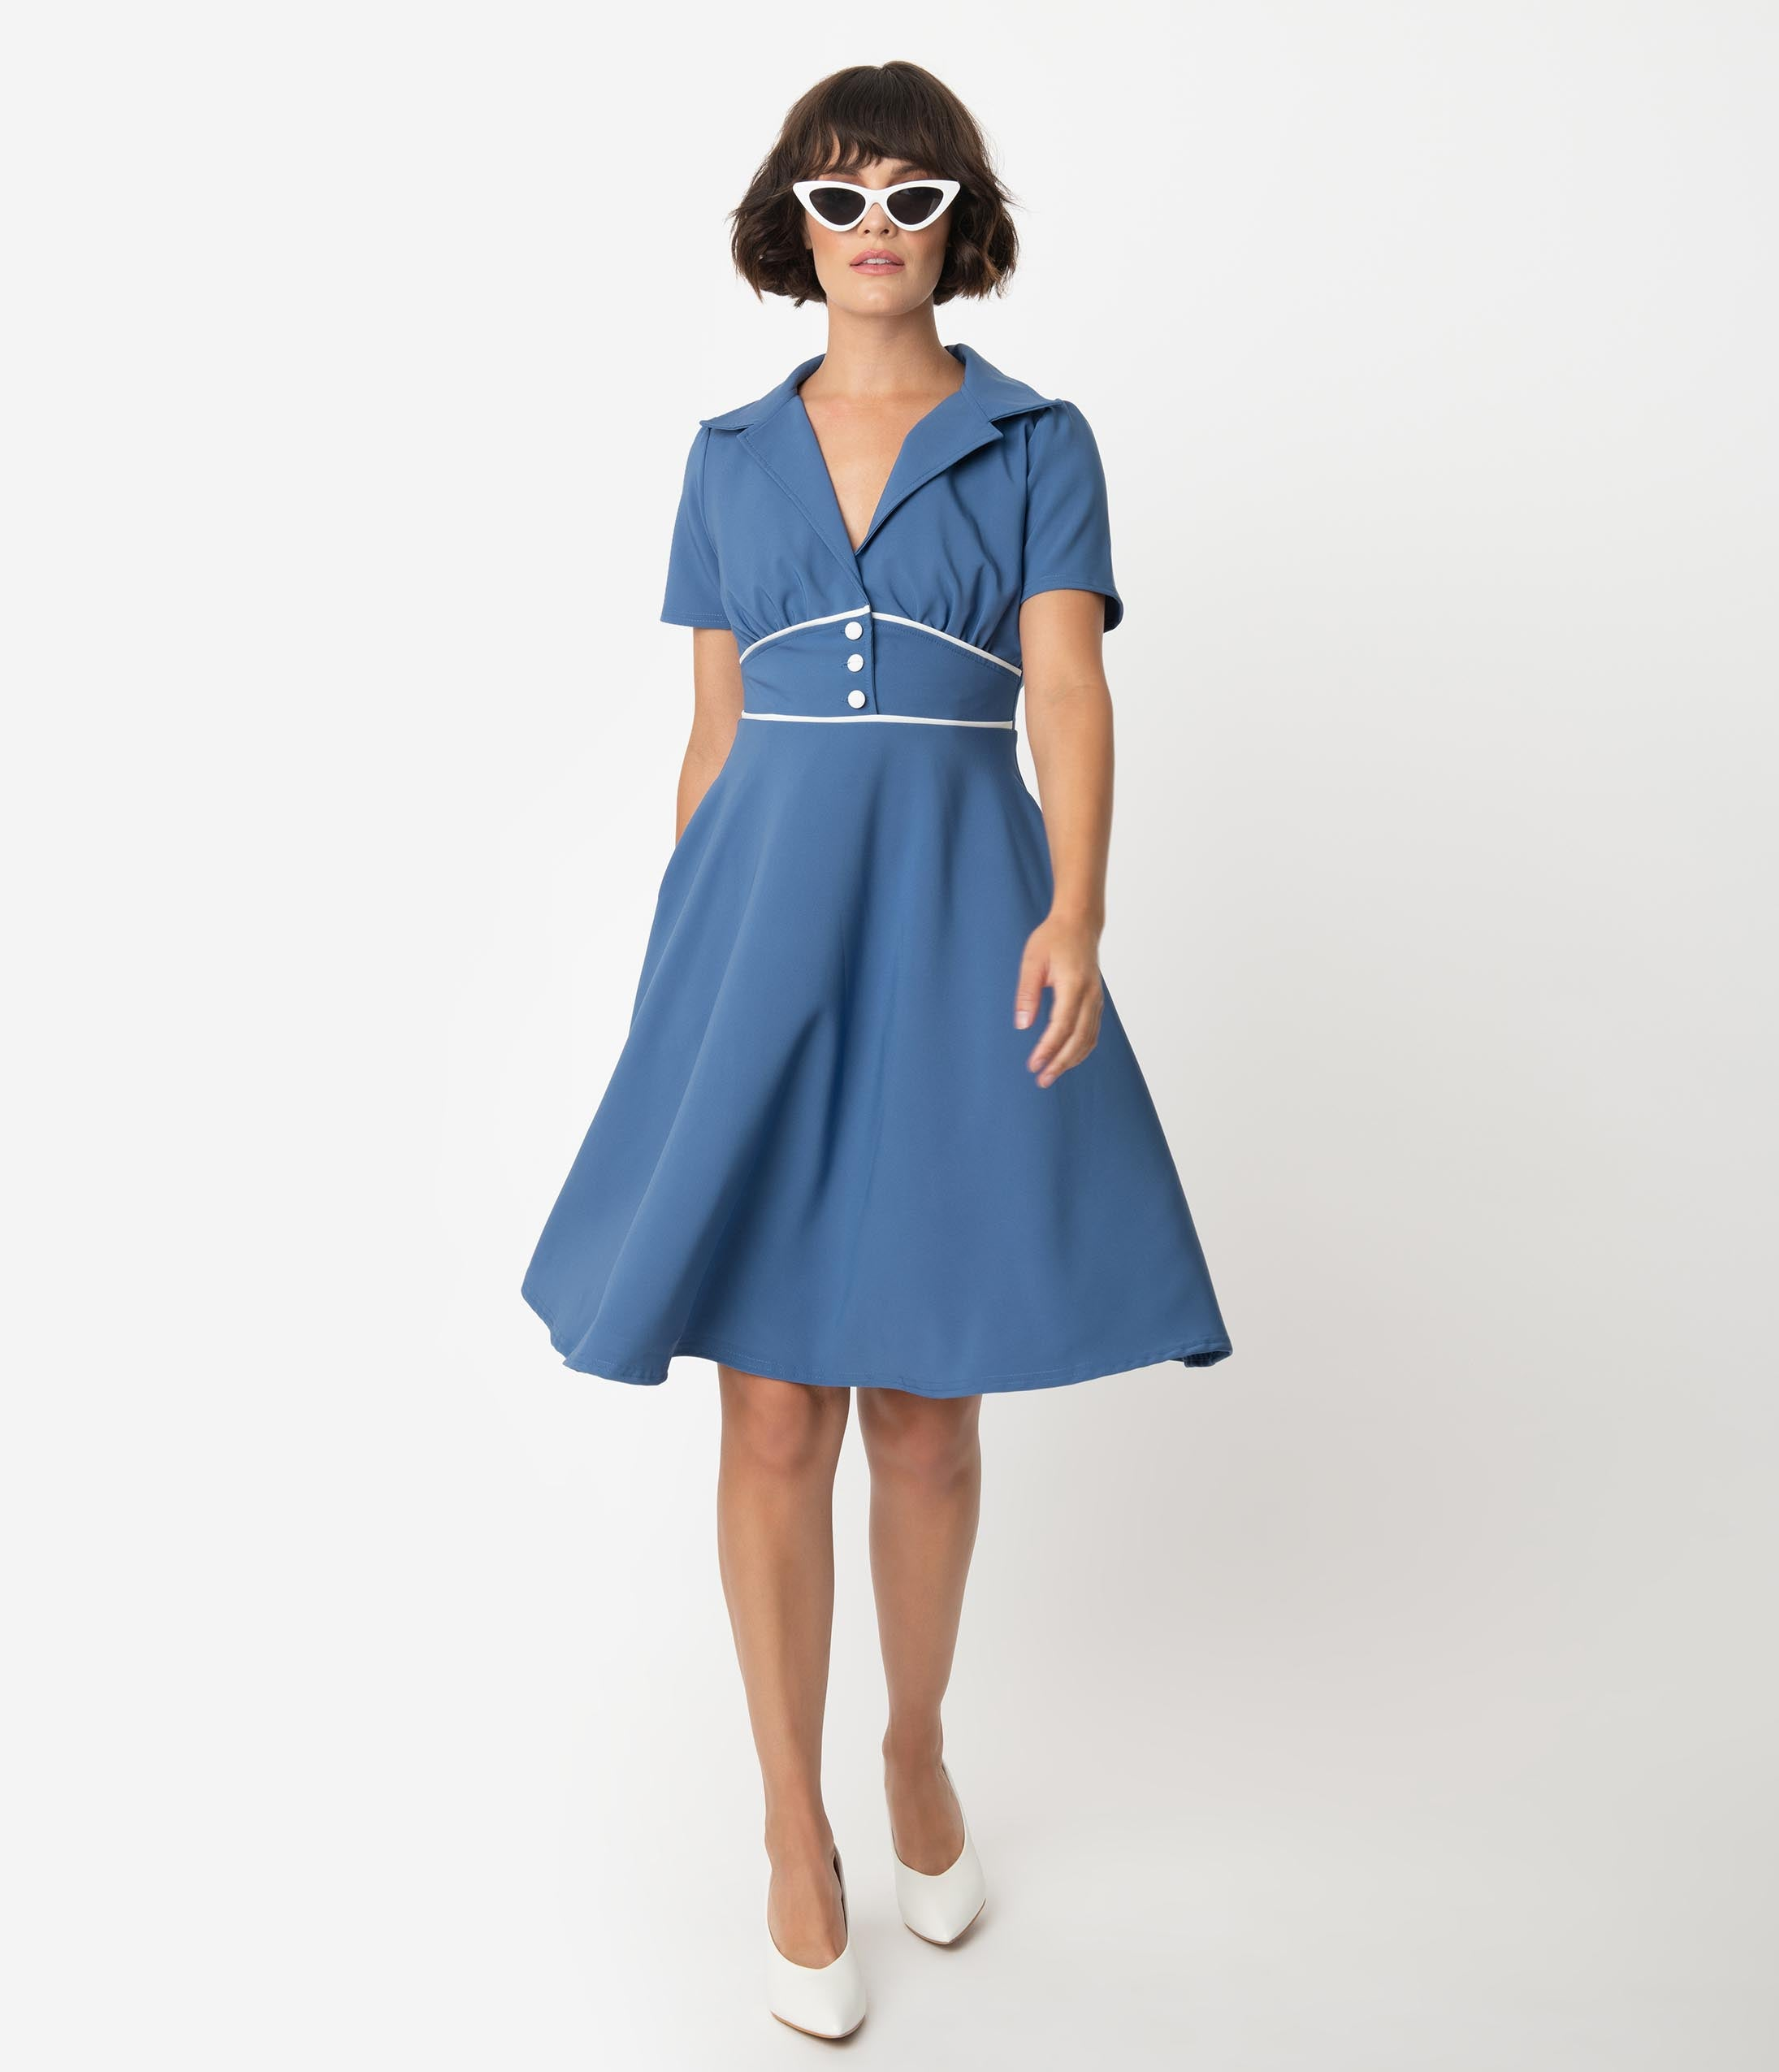 Swing Dance Clothing You Can Dance In Steady 1940S Style Blue Shadow Katherine Swing Dress $74.00 AT vintagedancer.com